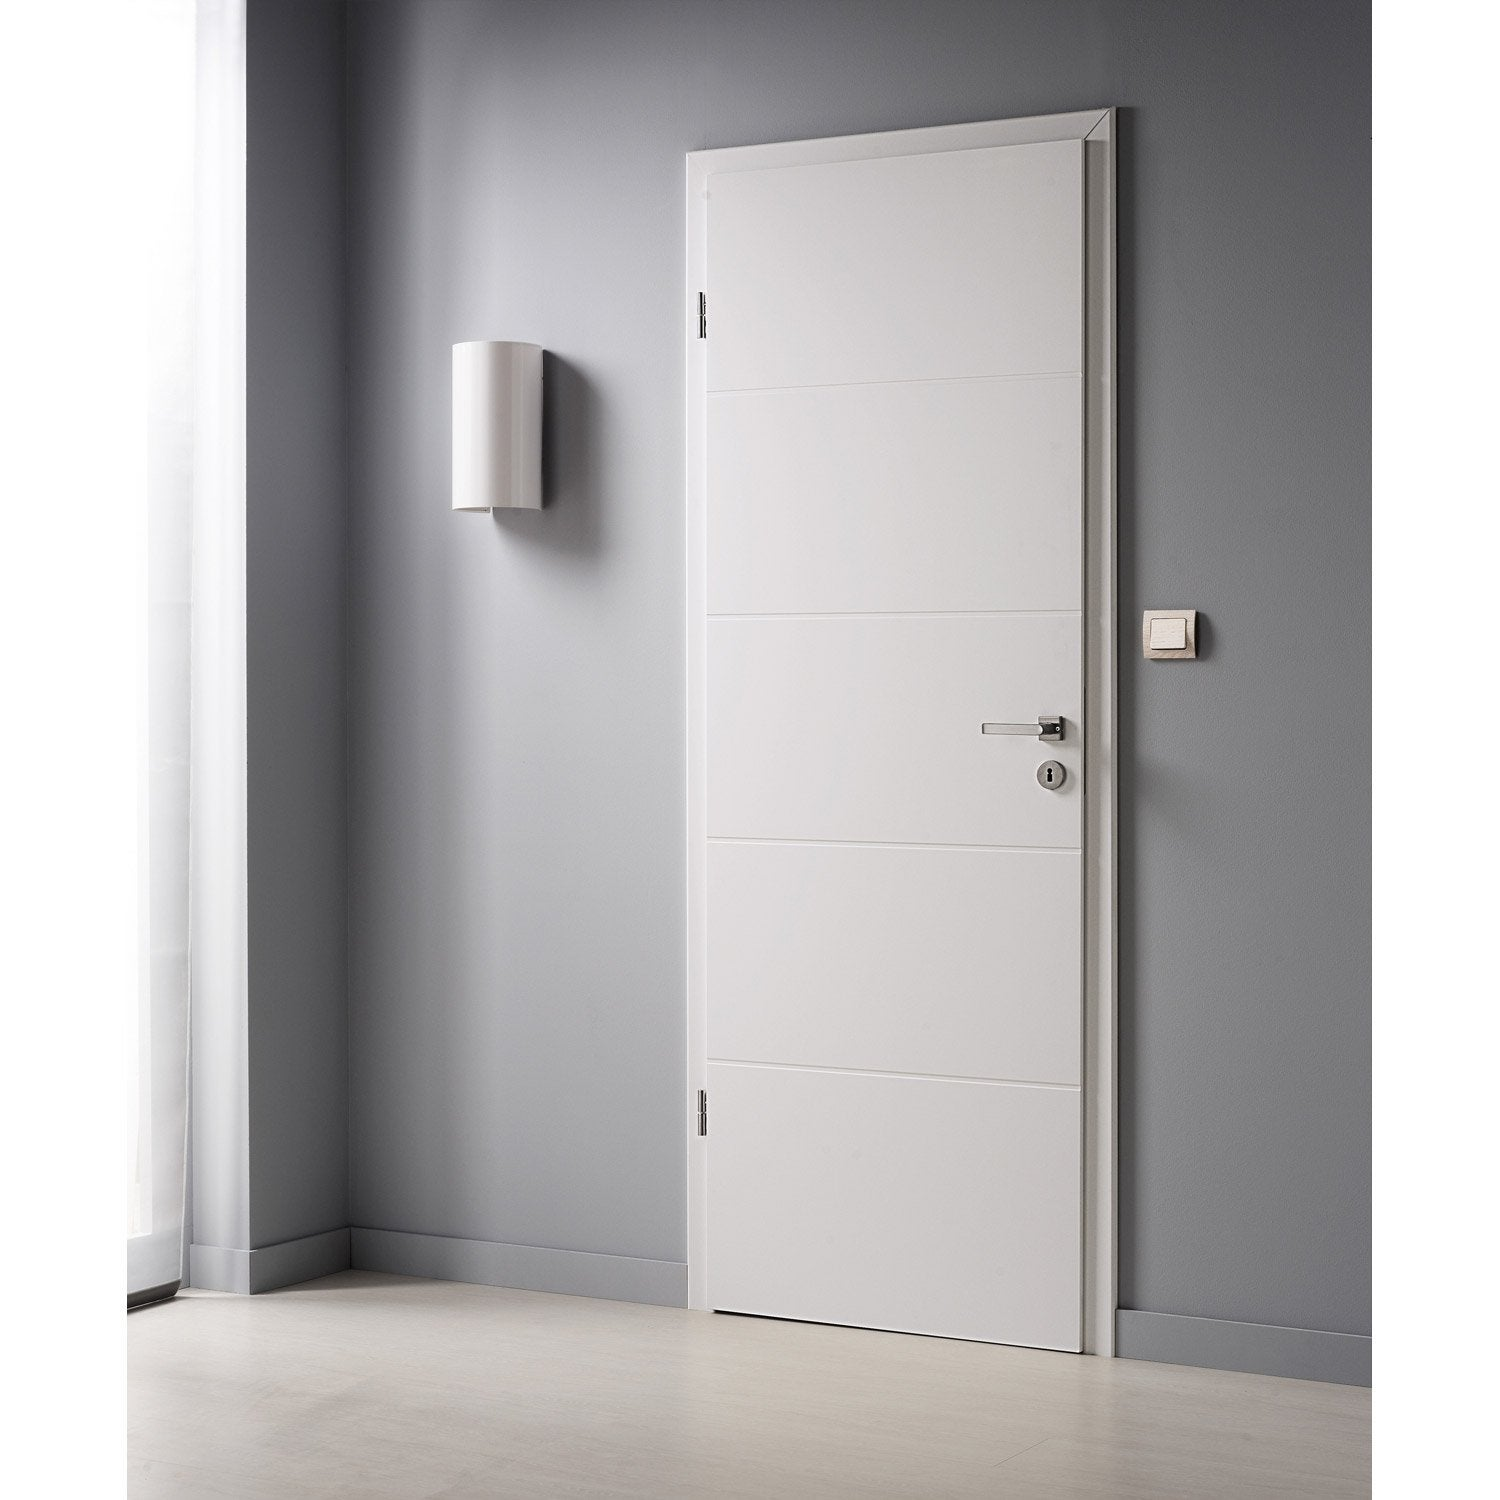 Porte sans b ti laqu e blanc naples x cm for Dimension porte interieur 83